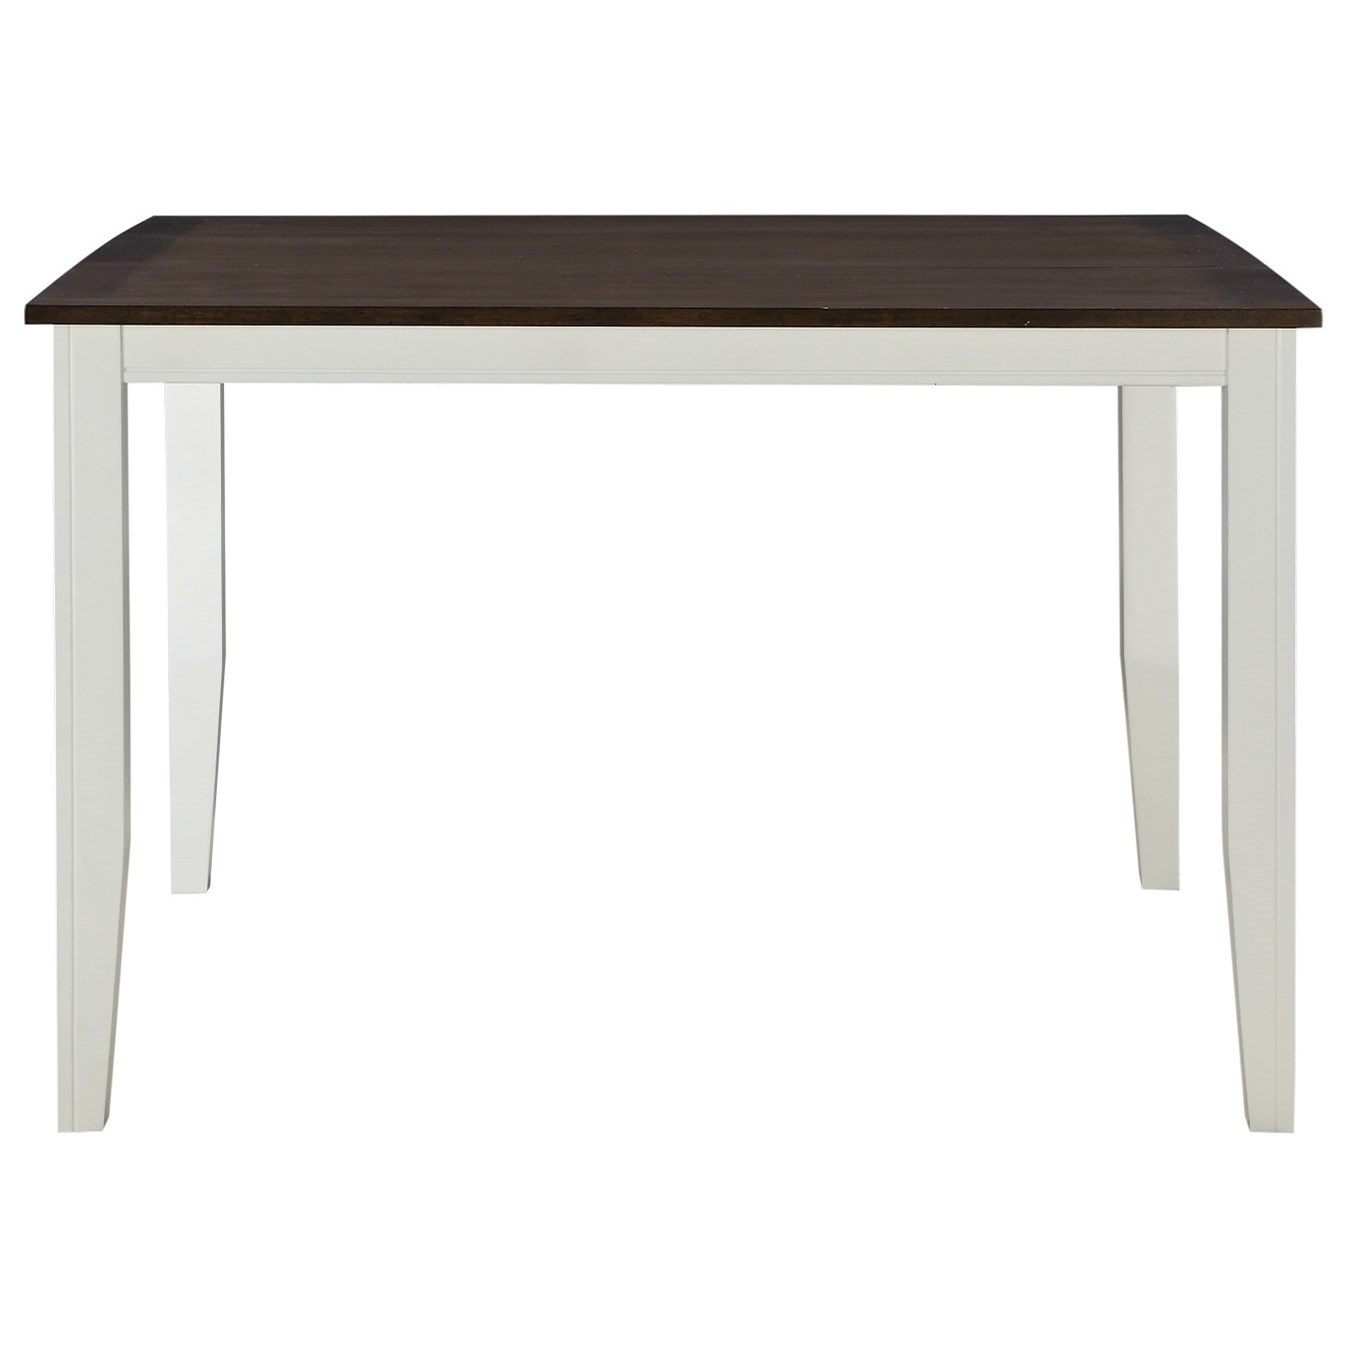 """Merrill Creek 54"""" Gathering Table with 18"""" Leaf by Emerald at Northeast Factory Direct"""